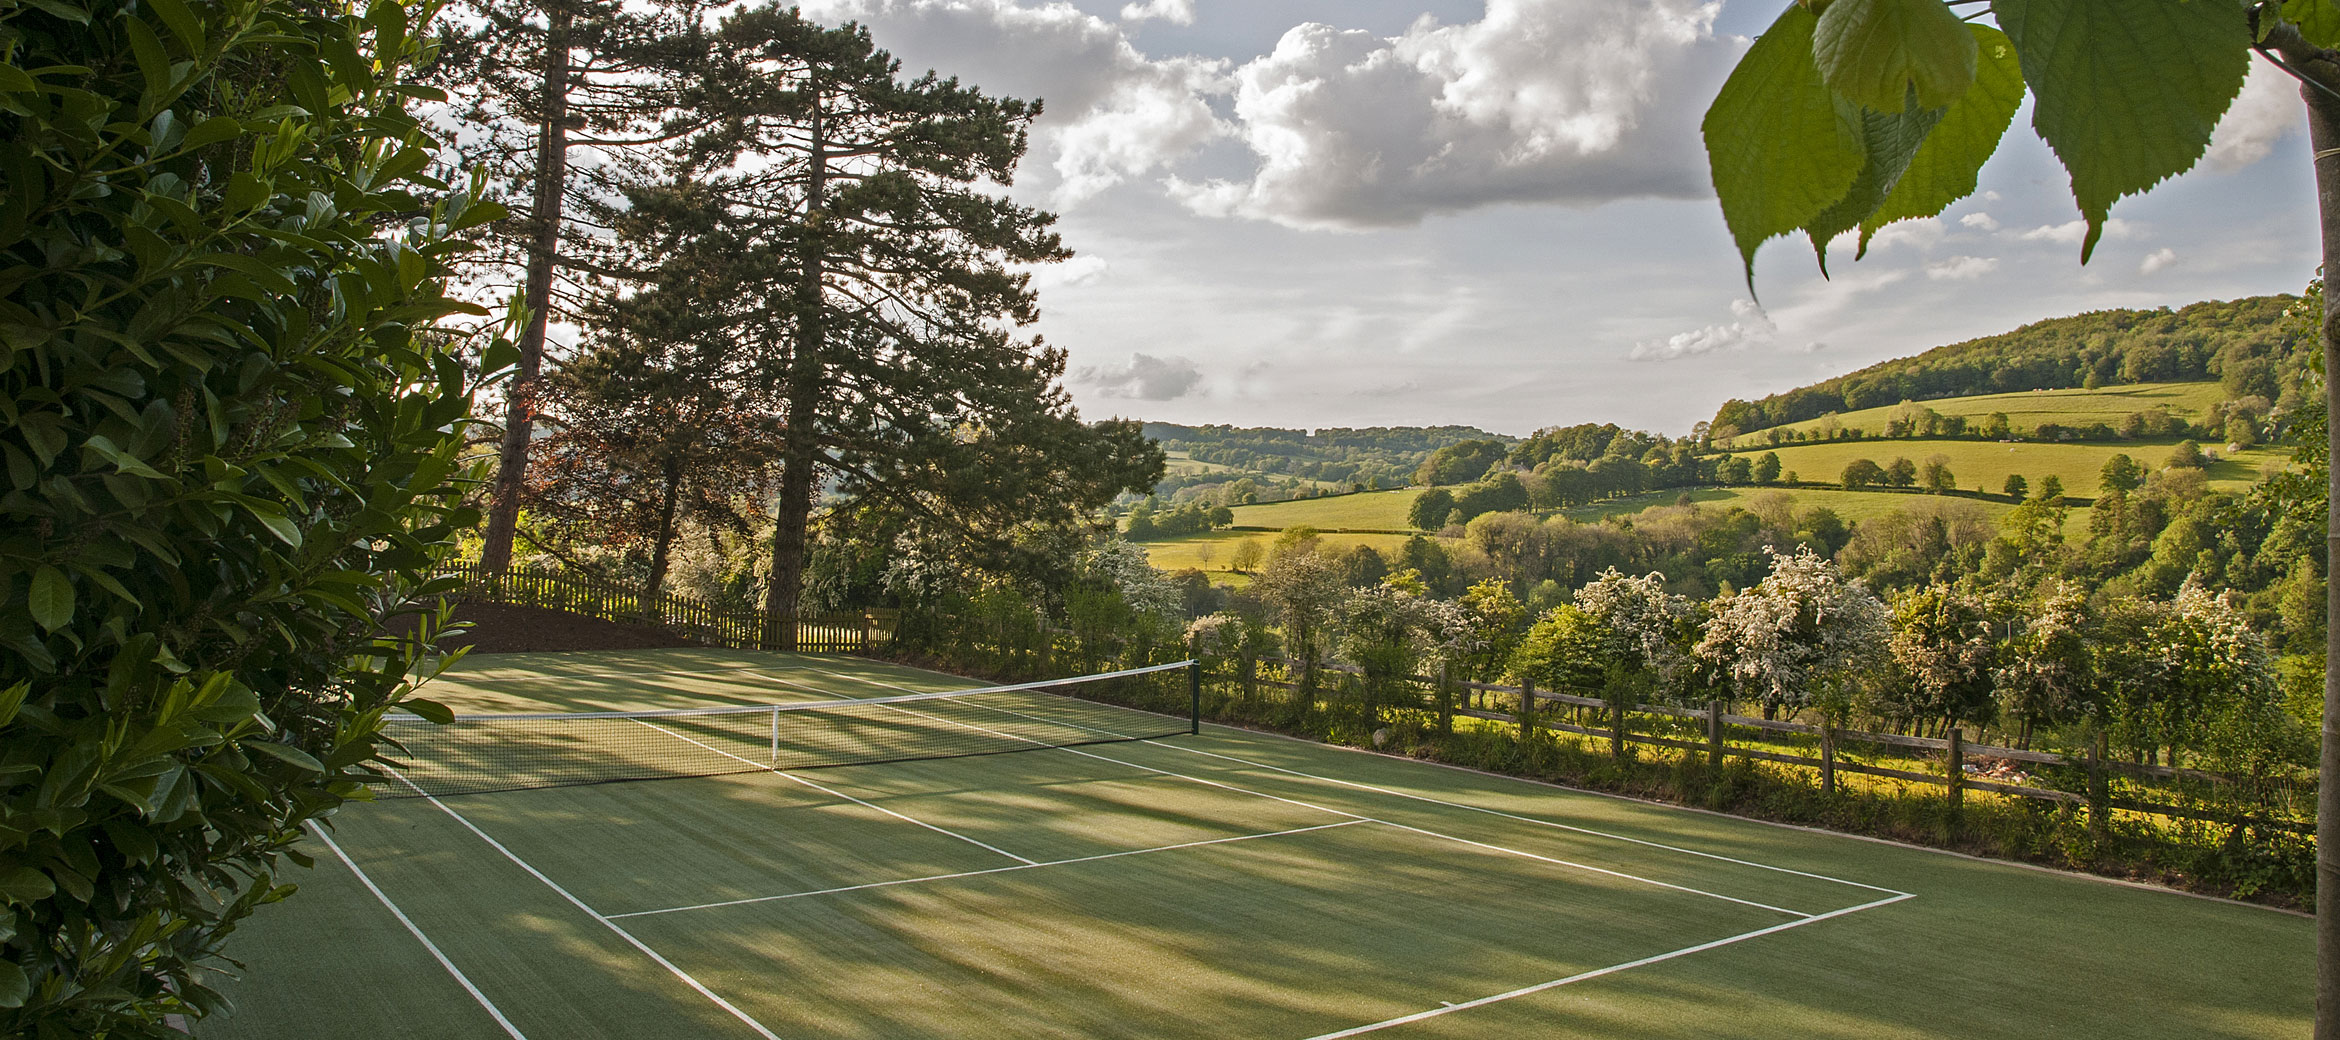 cotswold-tennis-court-with-a-view